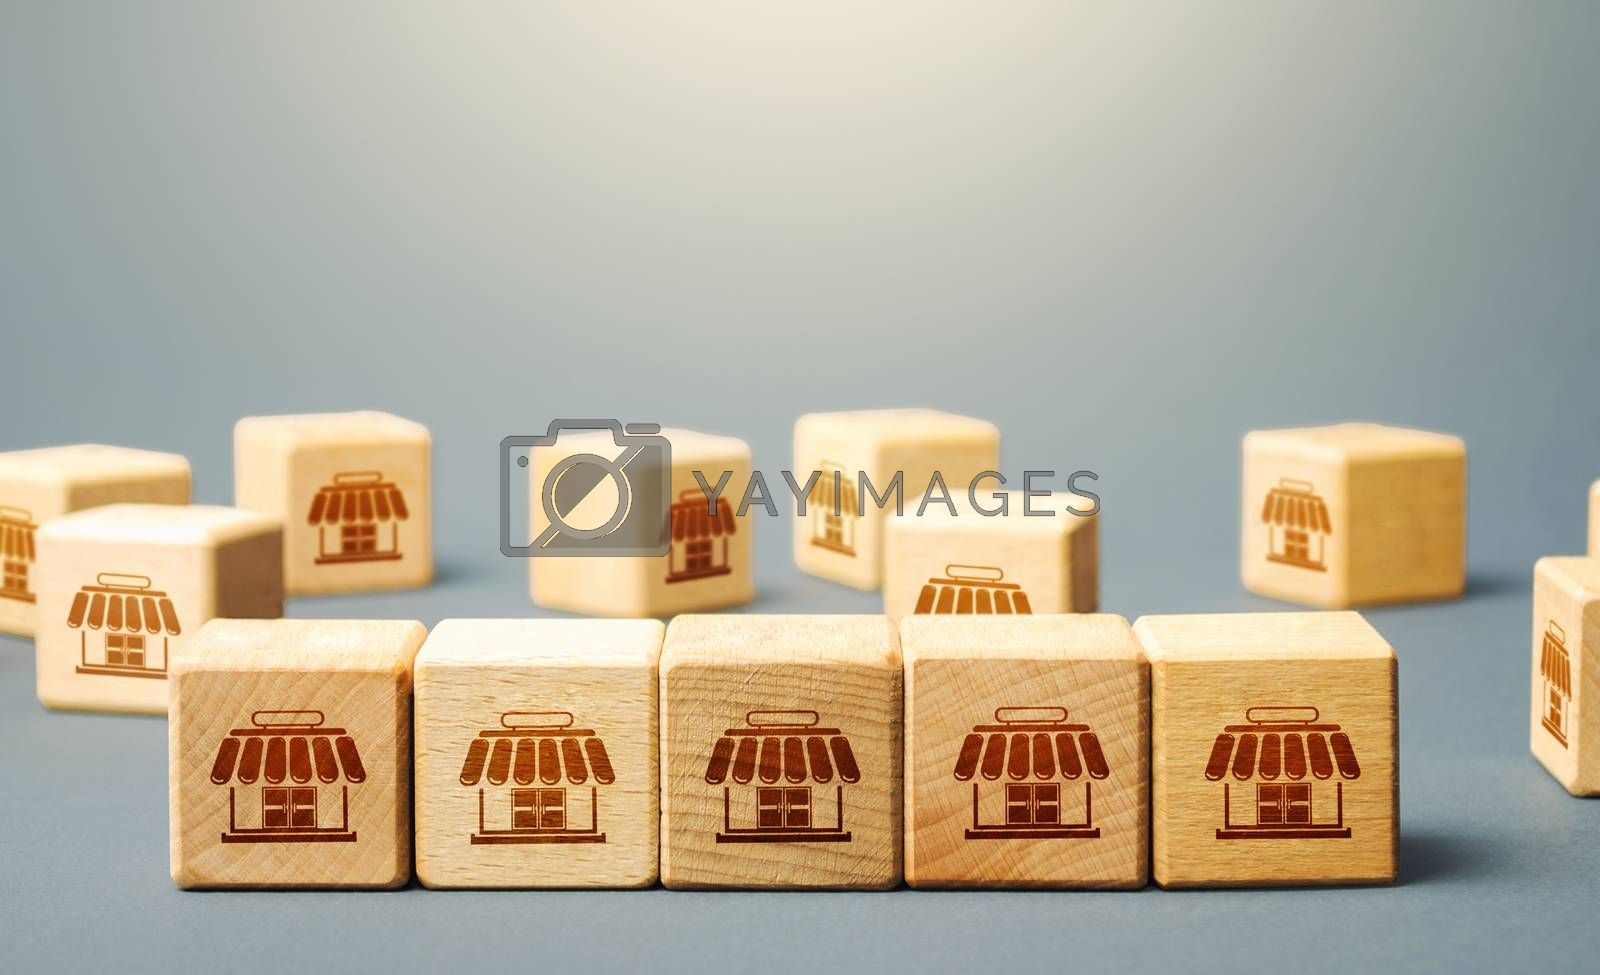 Blocks symbolizing shopping stores. Building a successful business empire. Franchise concept. Merging competitor, creation of a large network monopoly. Commercial association